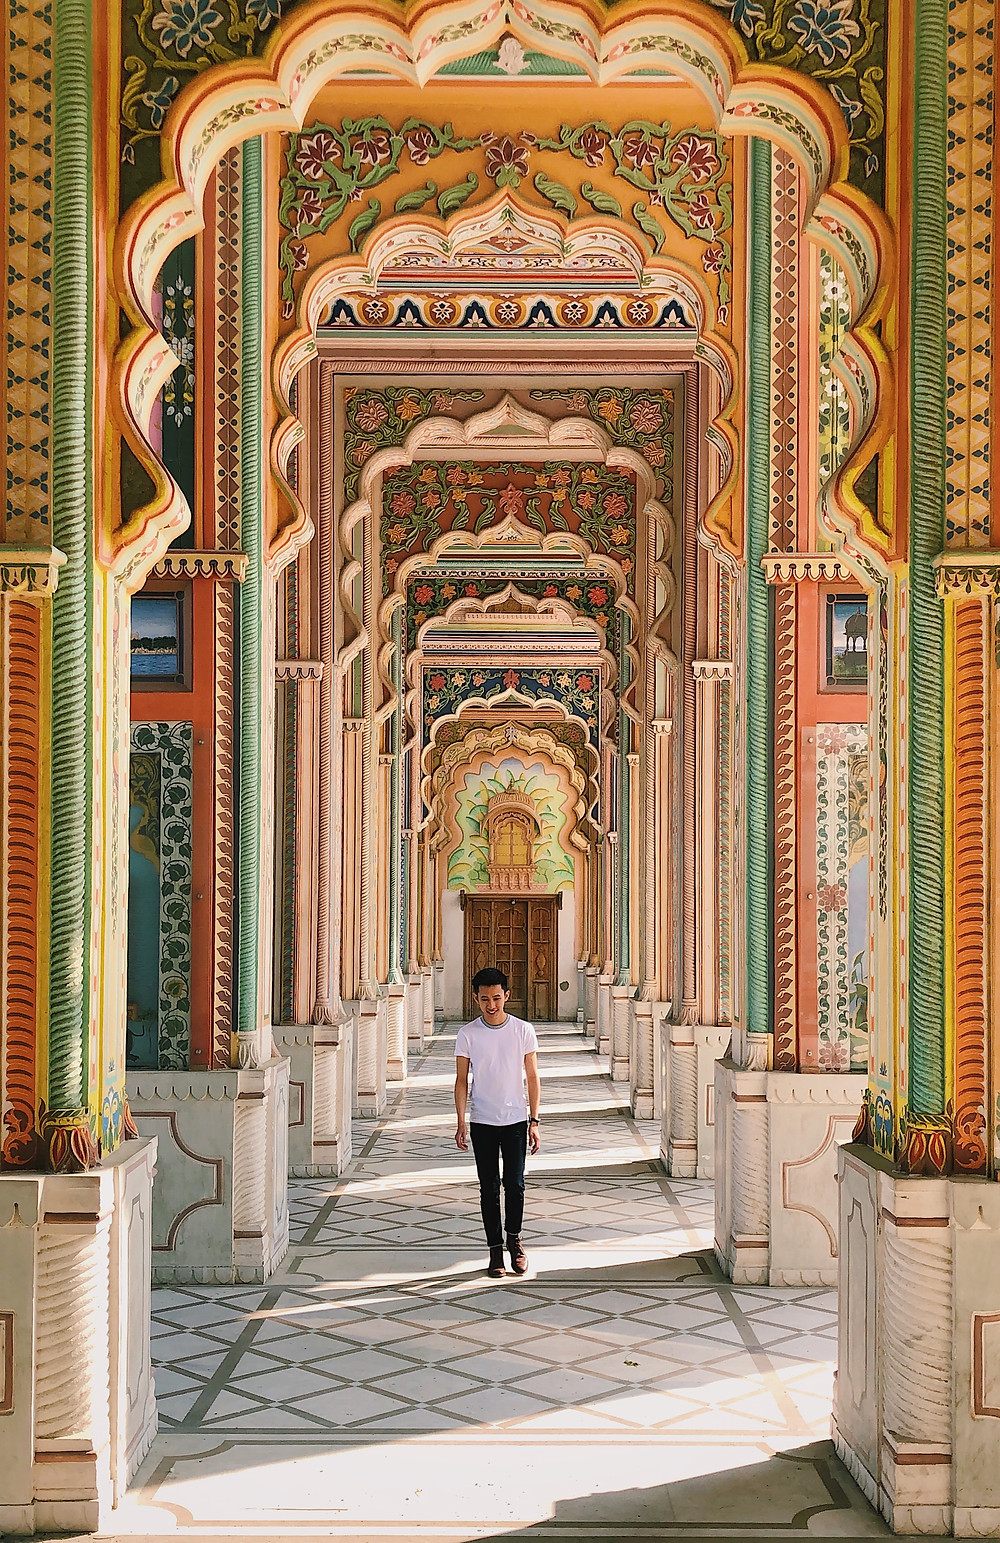 Colourful and symmetrical Patrika Gate, Jaipur, India